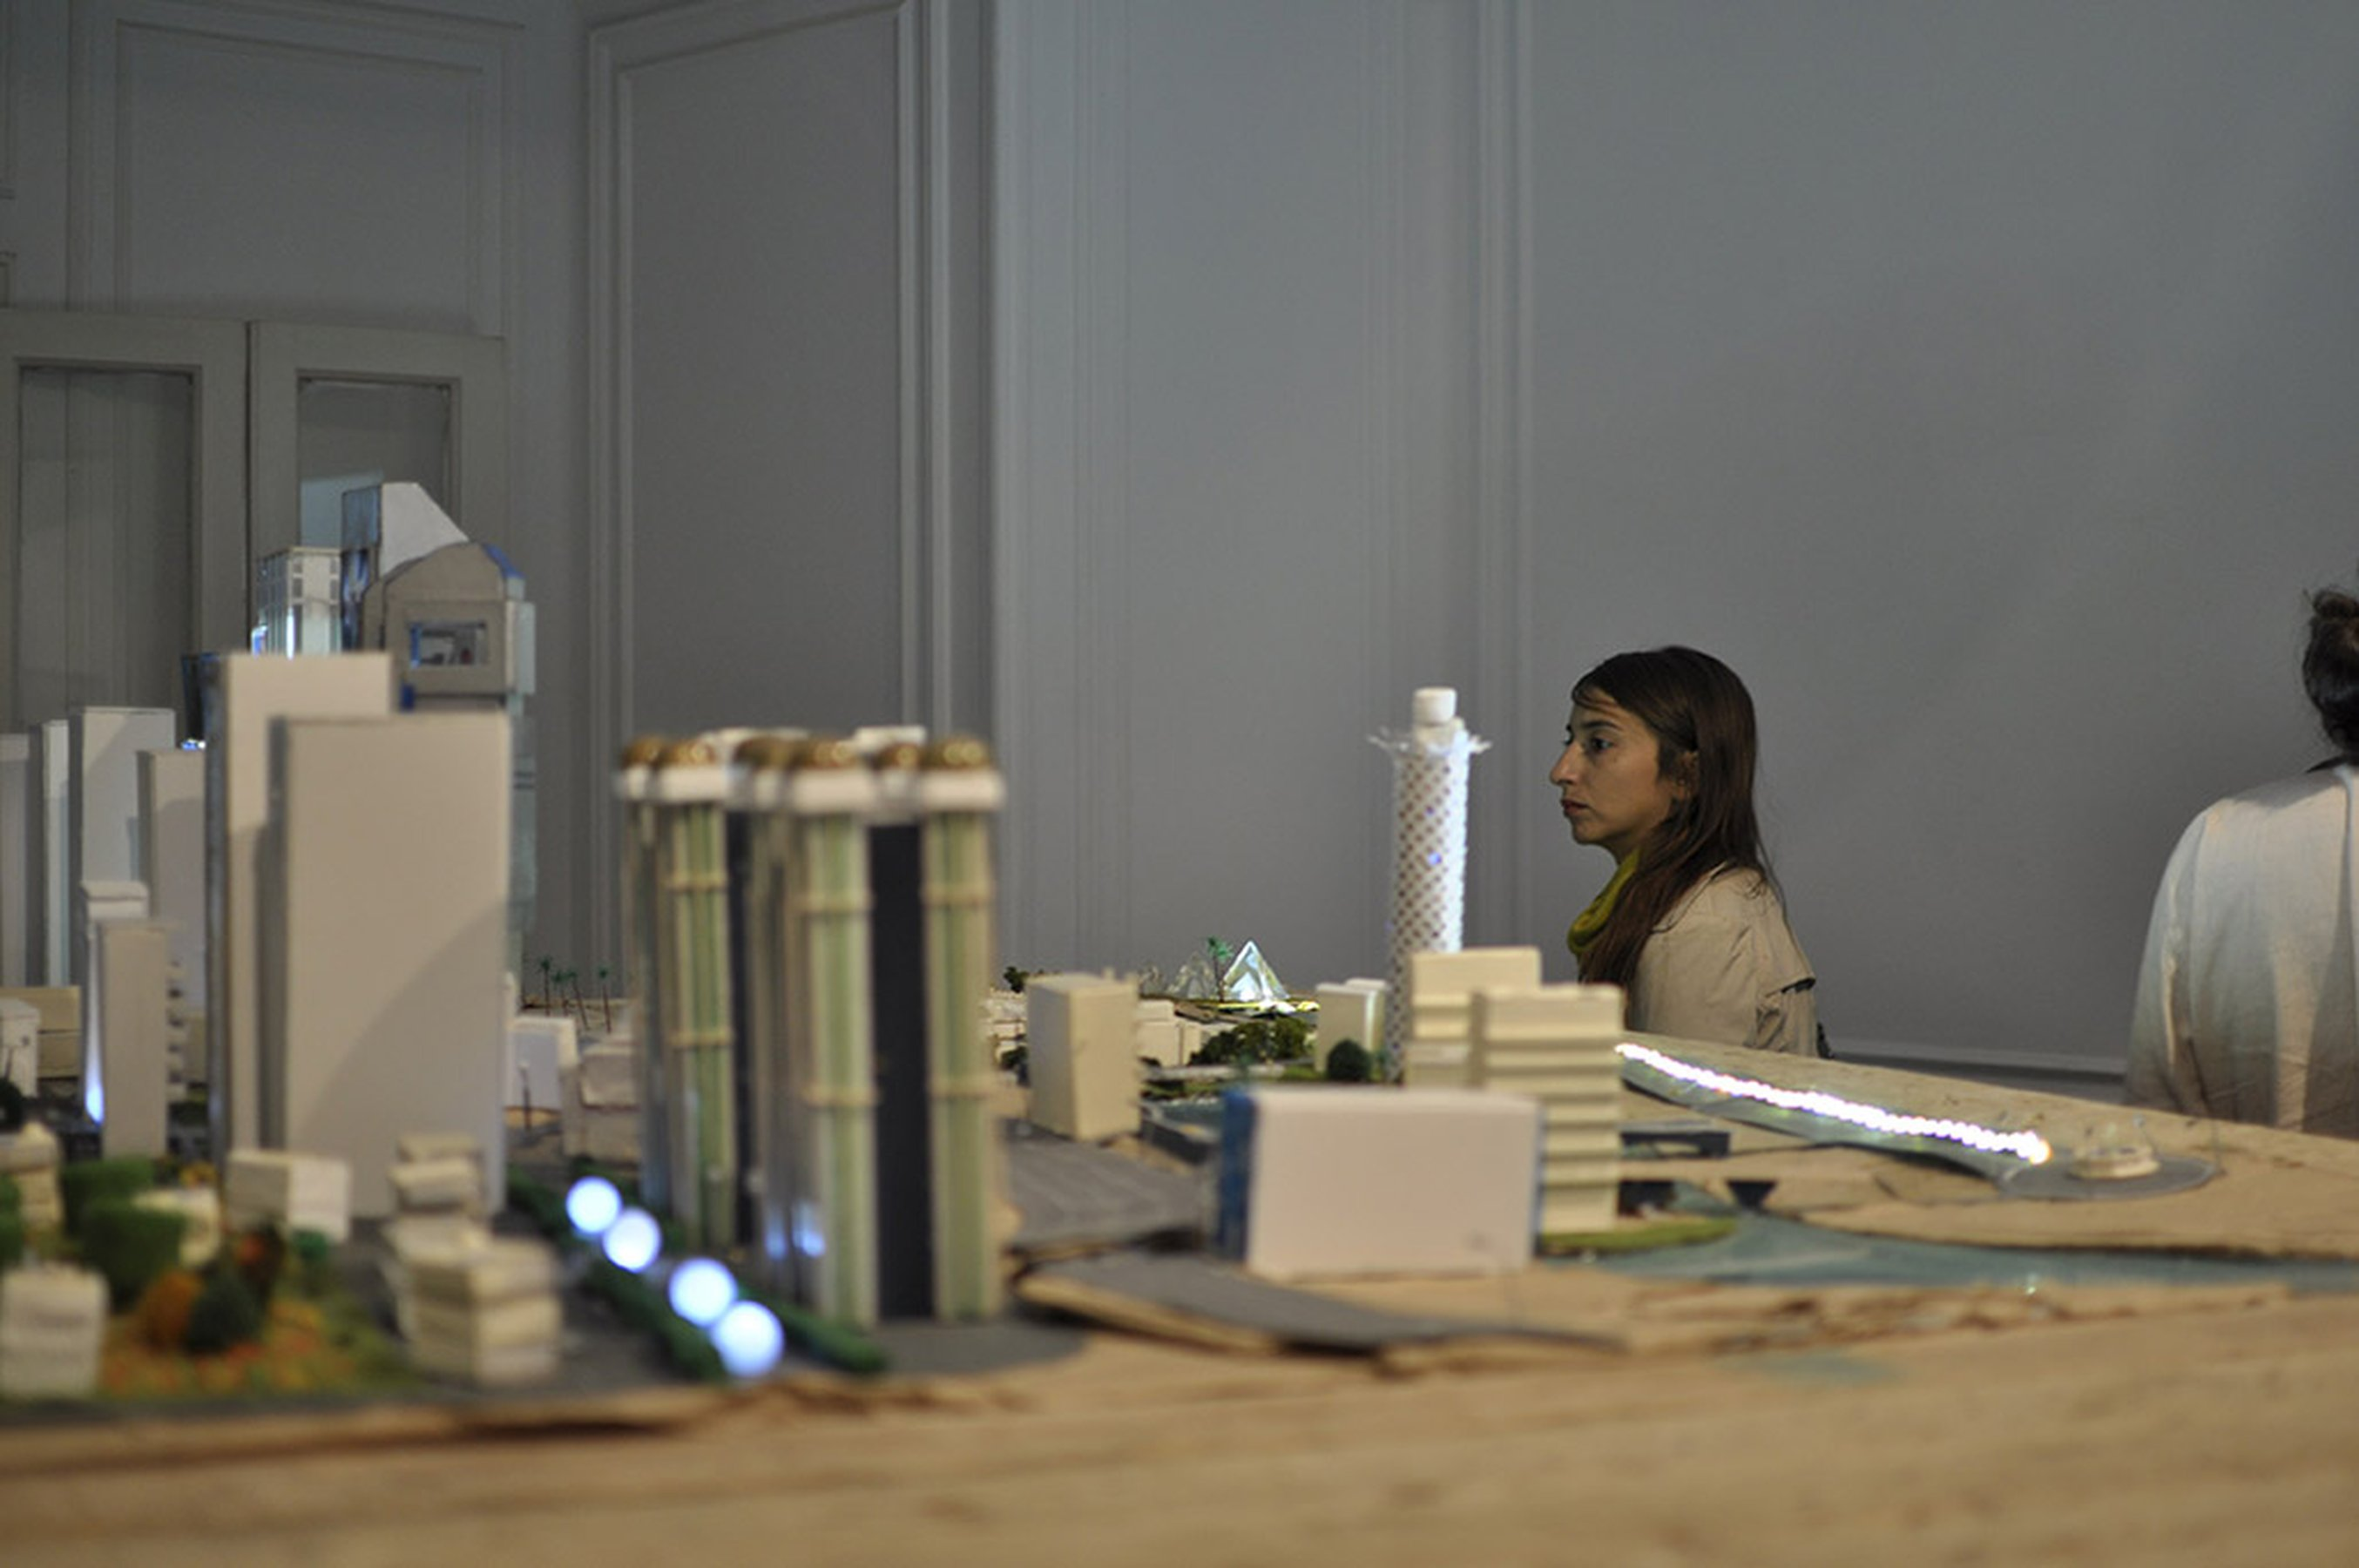 White Paper: the land, 2014 architectural model and video 175 × 265 × 125 cm; installation view at Casco, Beirut, 2014